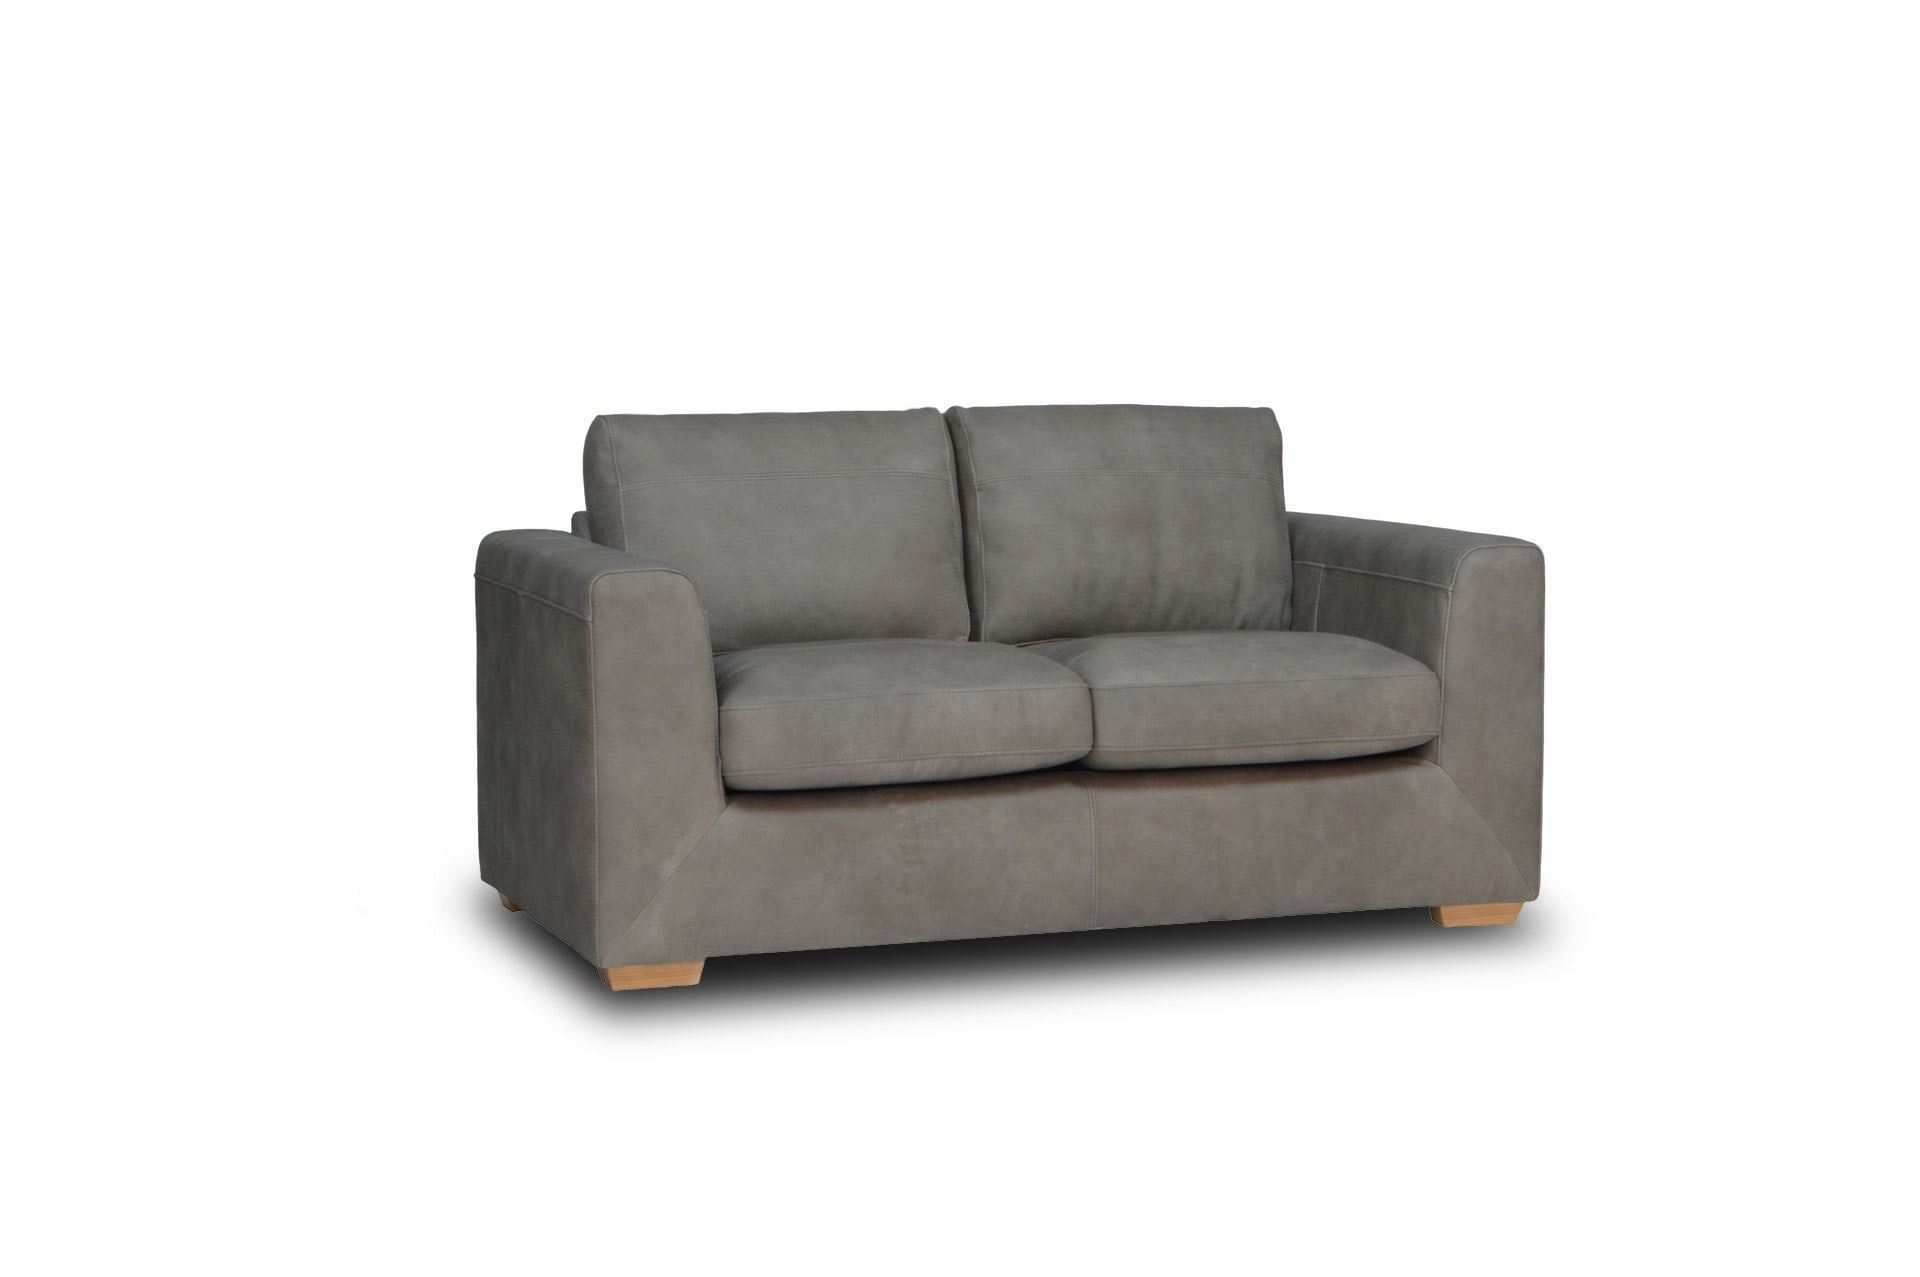 Small 2 Seater Sofas With Regard To Famous The Finn Small 2 Seater Sofa From Sofas And Sleep (View 17 of 20)